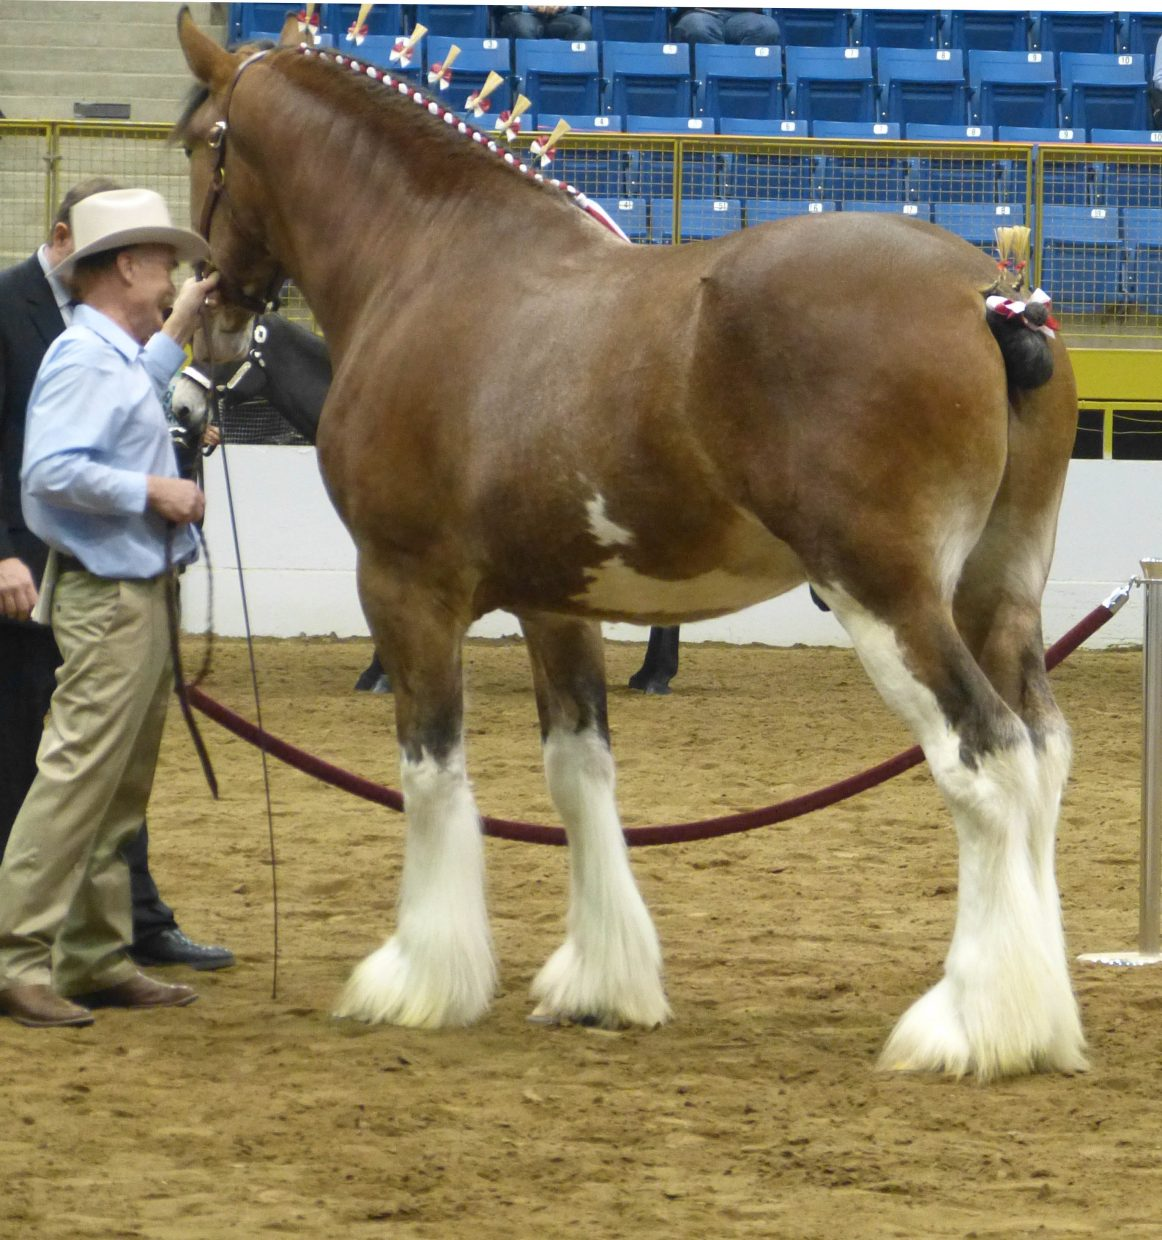 Hometown Heros- Champion Stallion 2015 National Western Stockshow- Owned & Bred by Barry Castagnasso in Hayden, Colorado. Submitted by: Andrea Sponseller